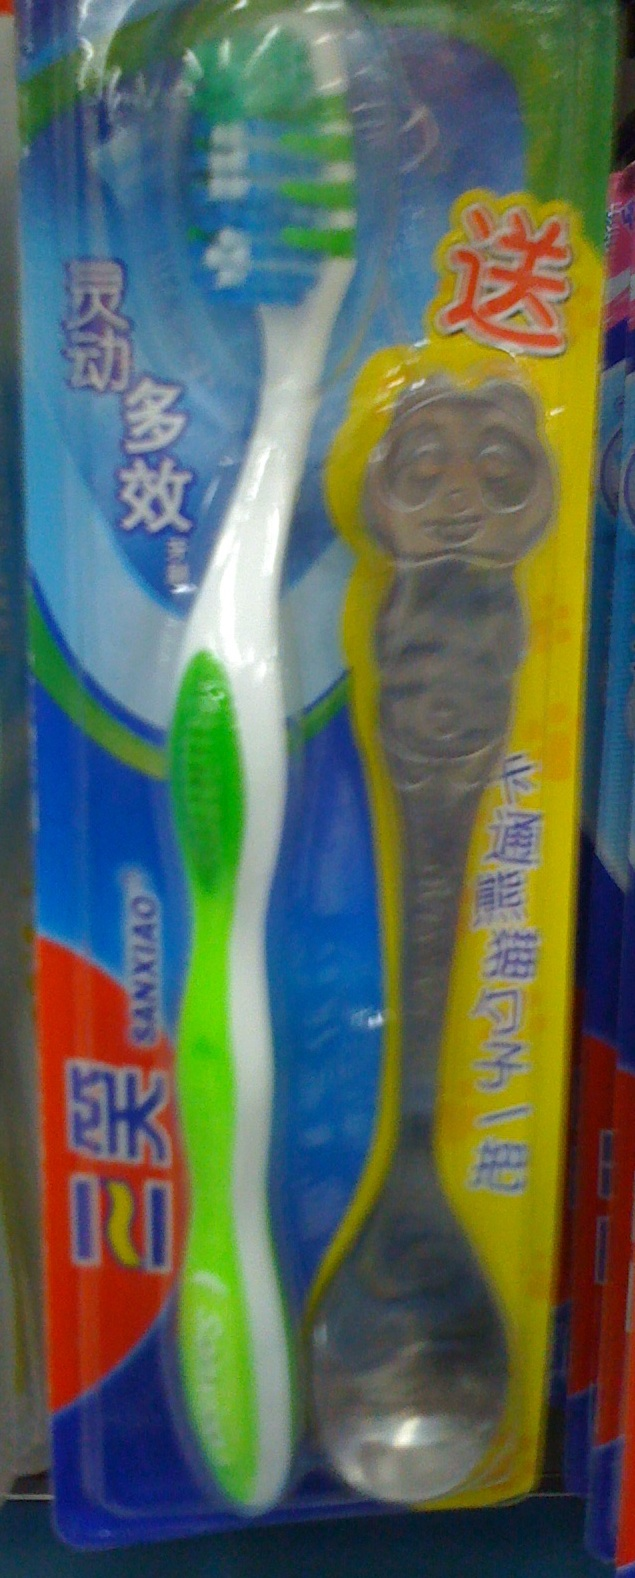 a88230754 On-Pack Promo Gift with Toothbrush in China